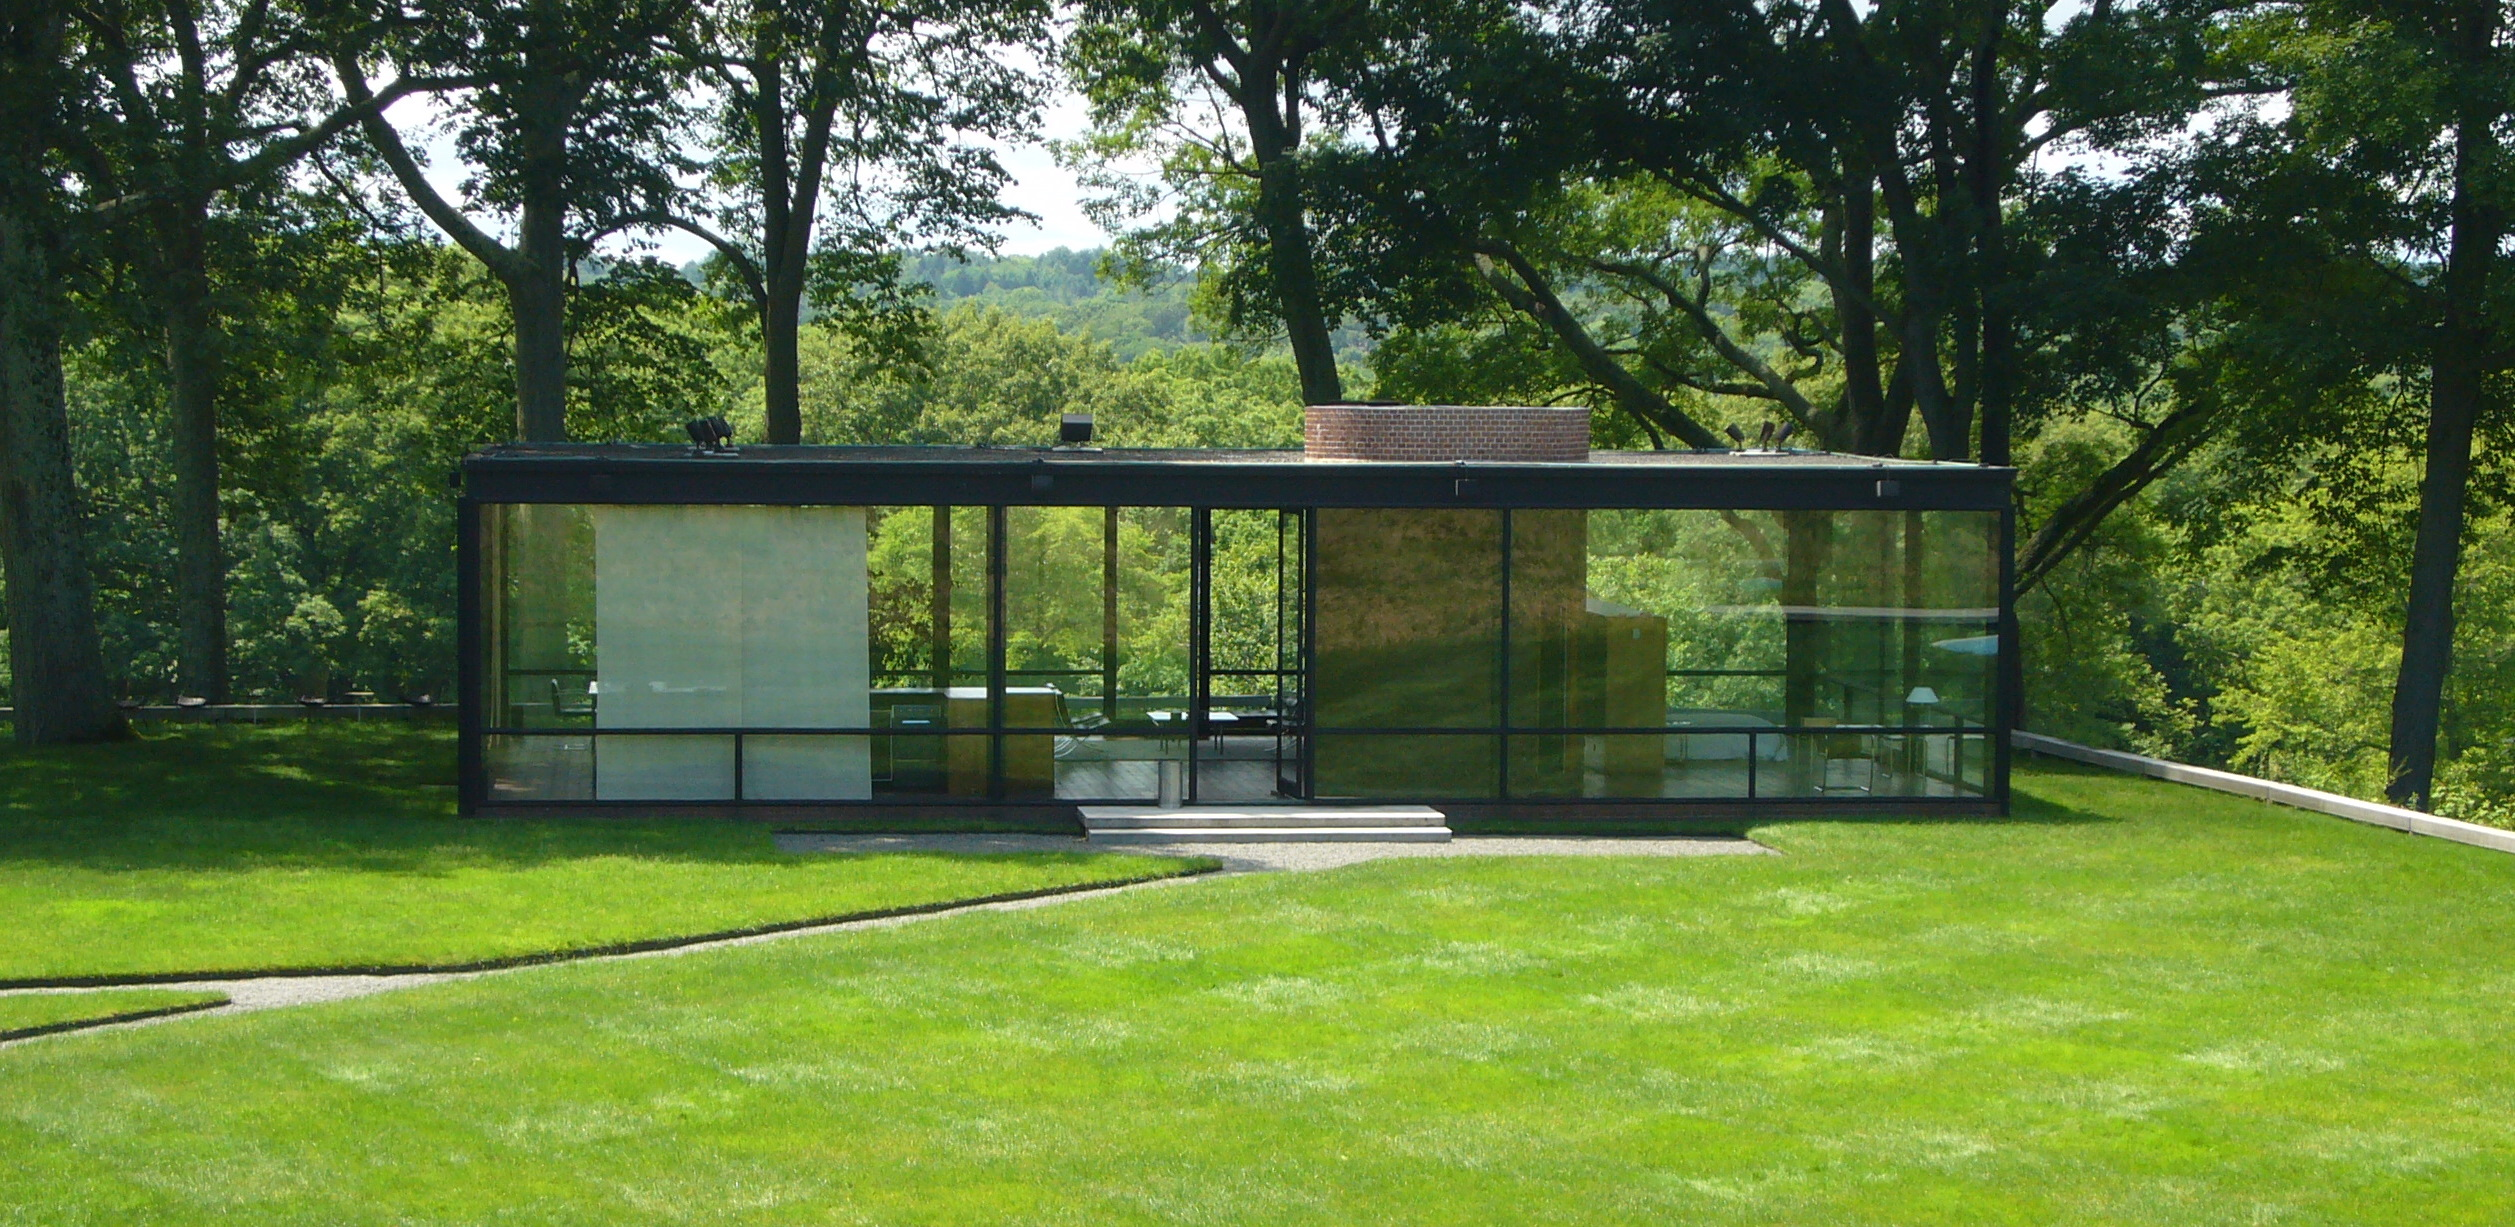 Philip Johnson's Glass House in New Canaan, Connecticut. A new book by Dallas Morning News architecture critic Mark Lamster examines Johnson's life and legacy.